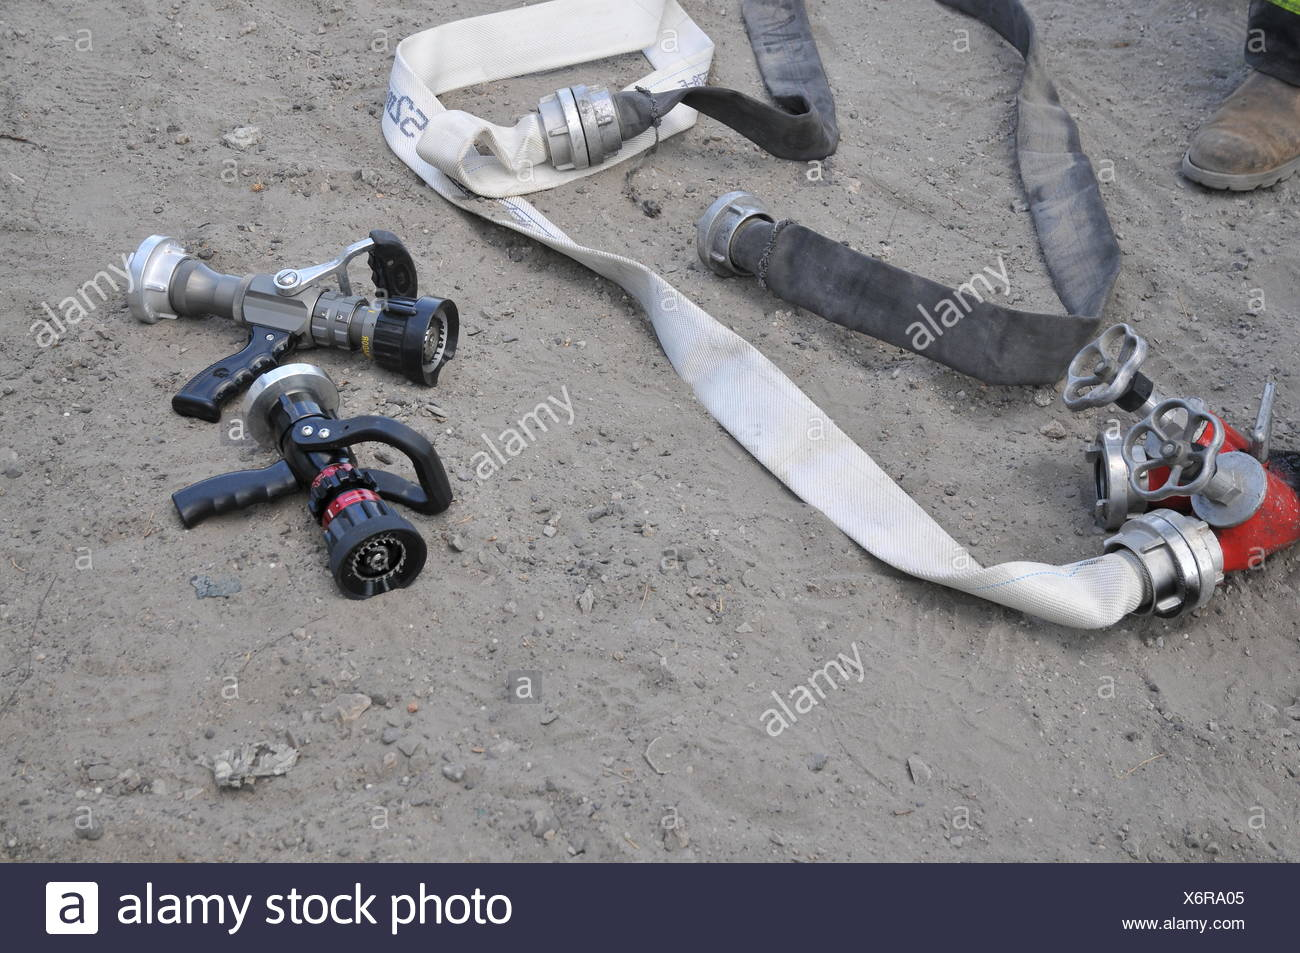 Fire fighters equipment hoses ready for use - Stock Image